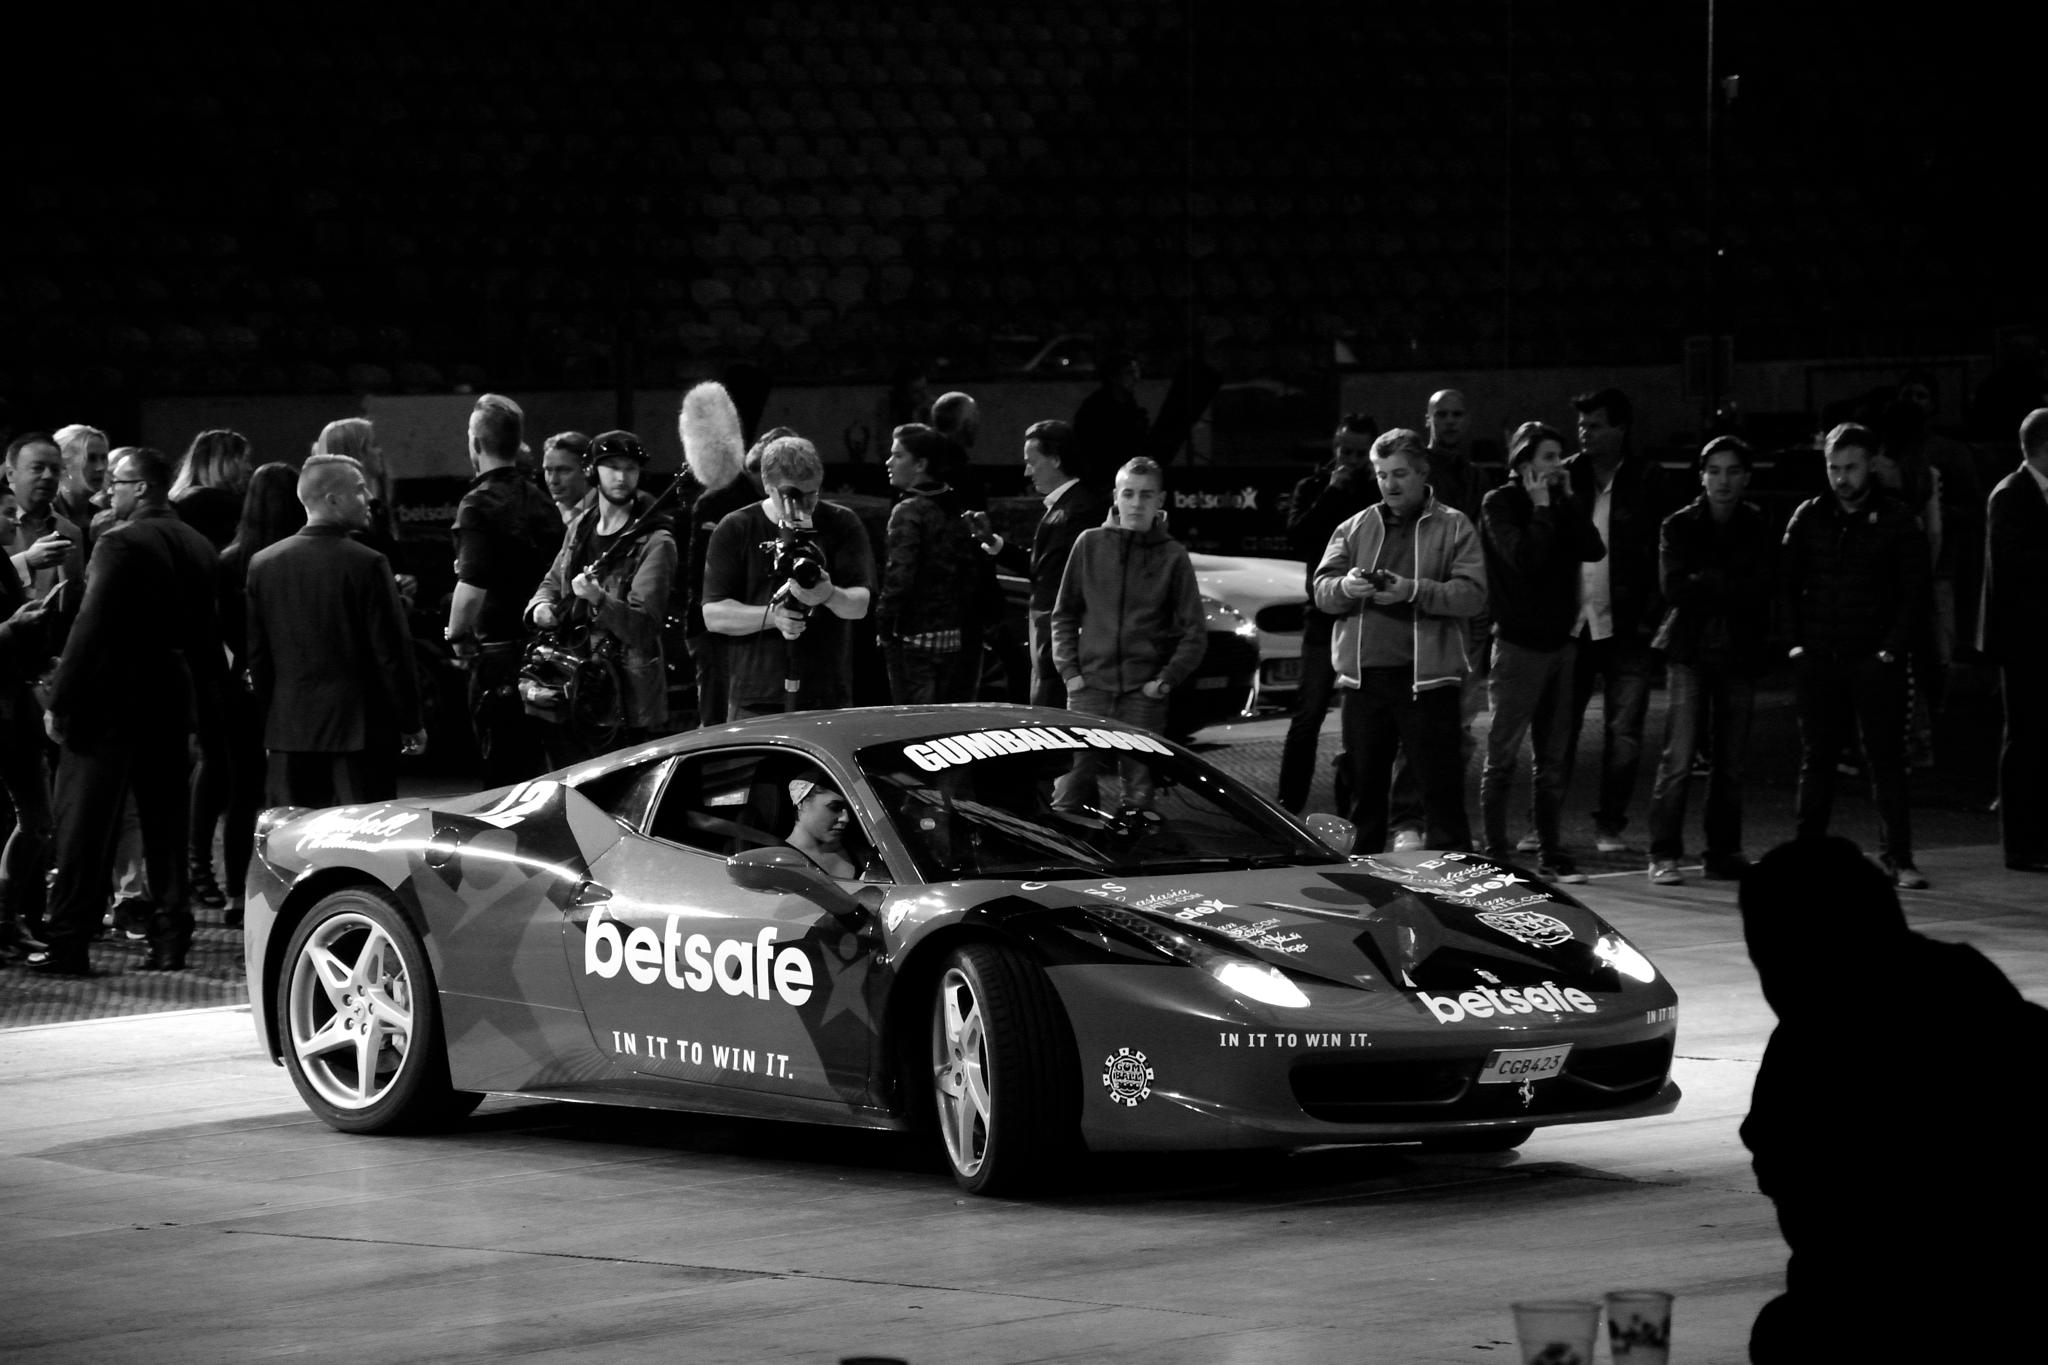 Gumball 3000 at the Amsterdam Arena, Netherlands by Wim Byl